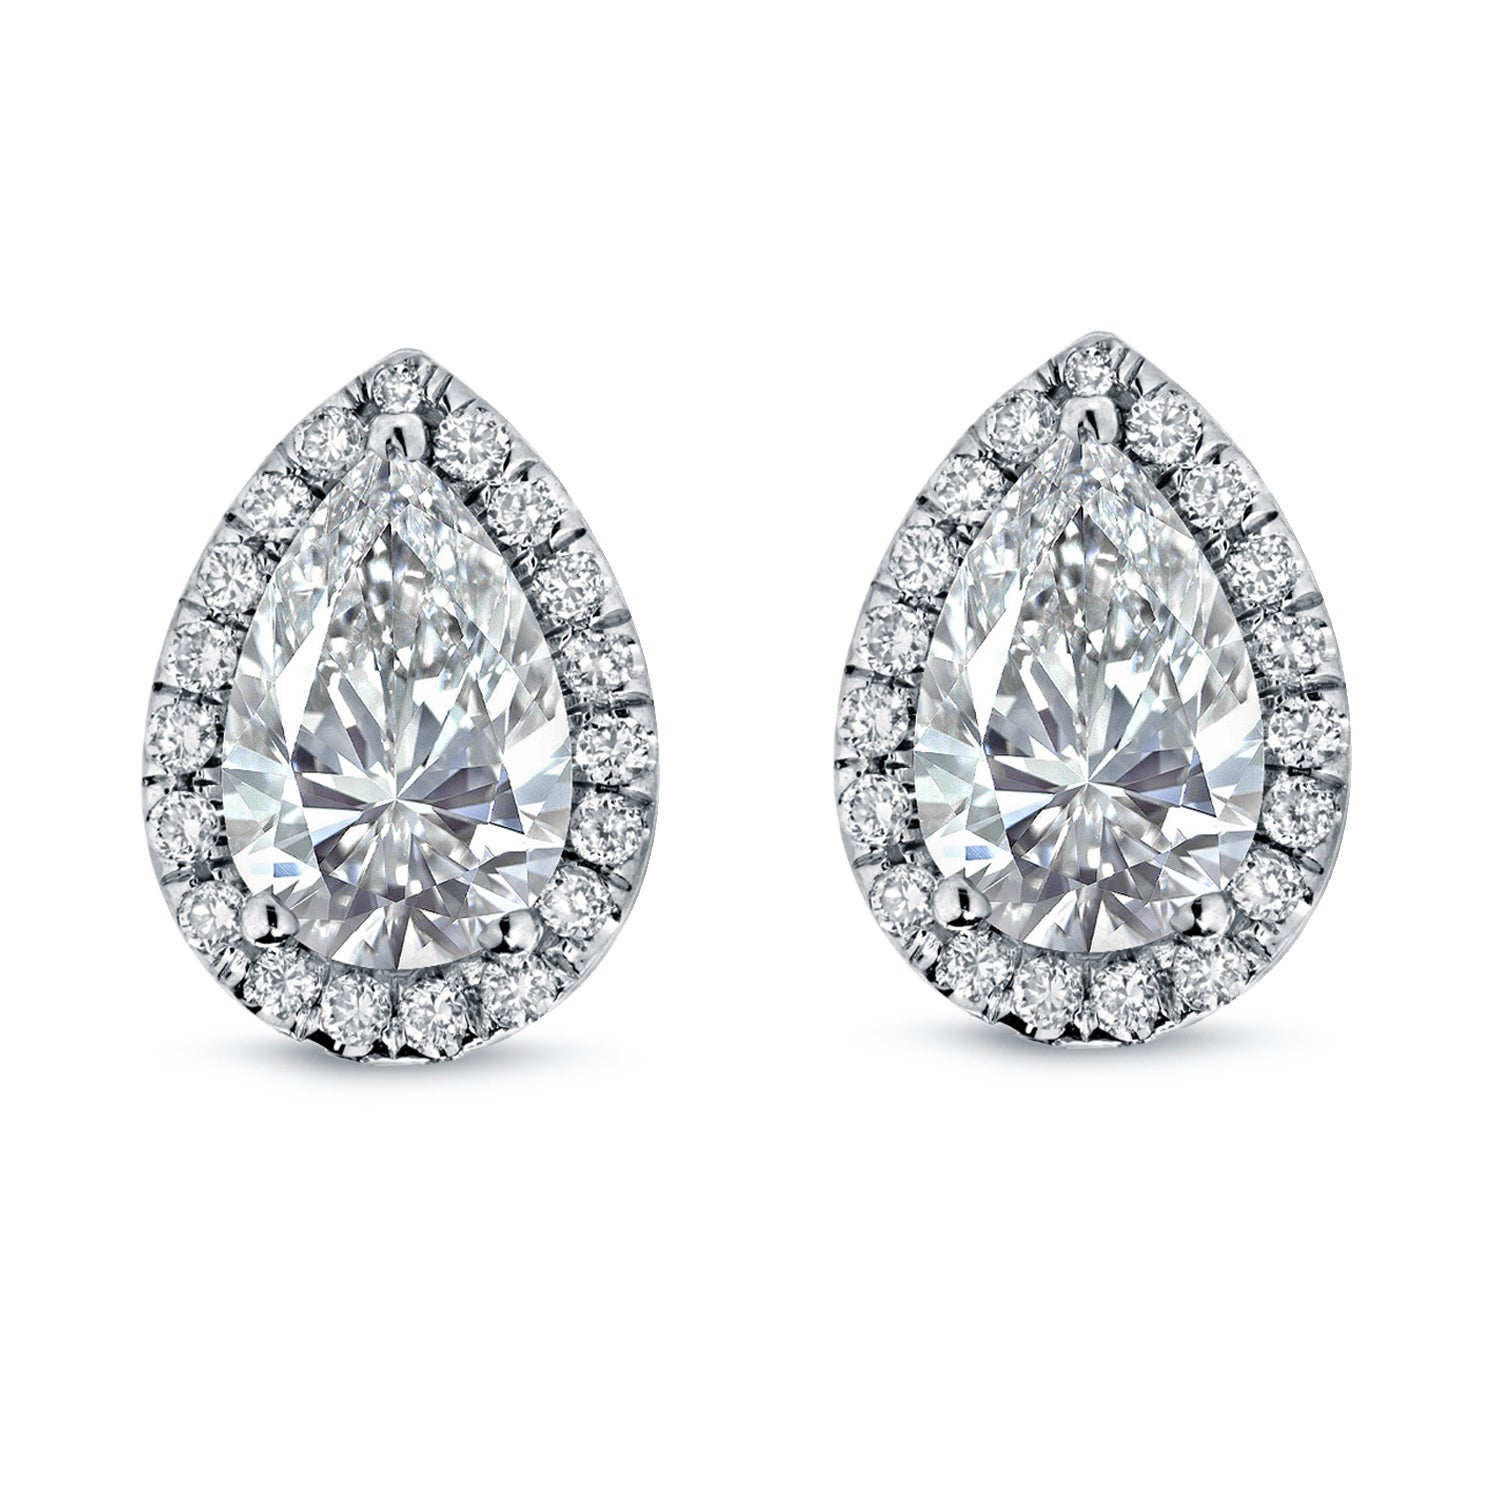 halo diamond ltd a products shape white earrings gold shaped pear ogi sapphire drop